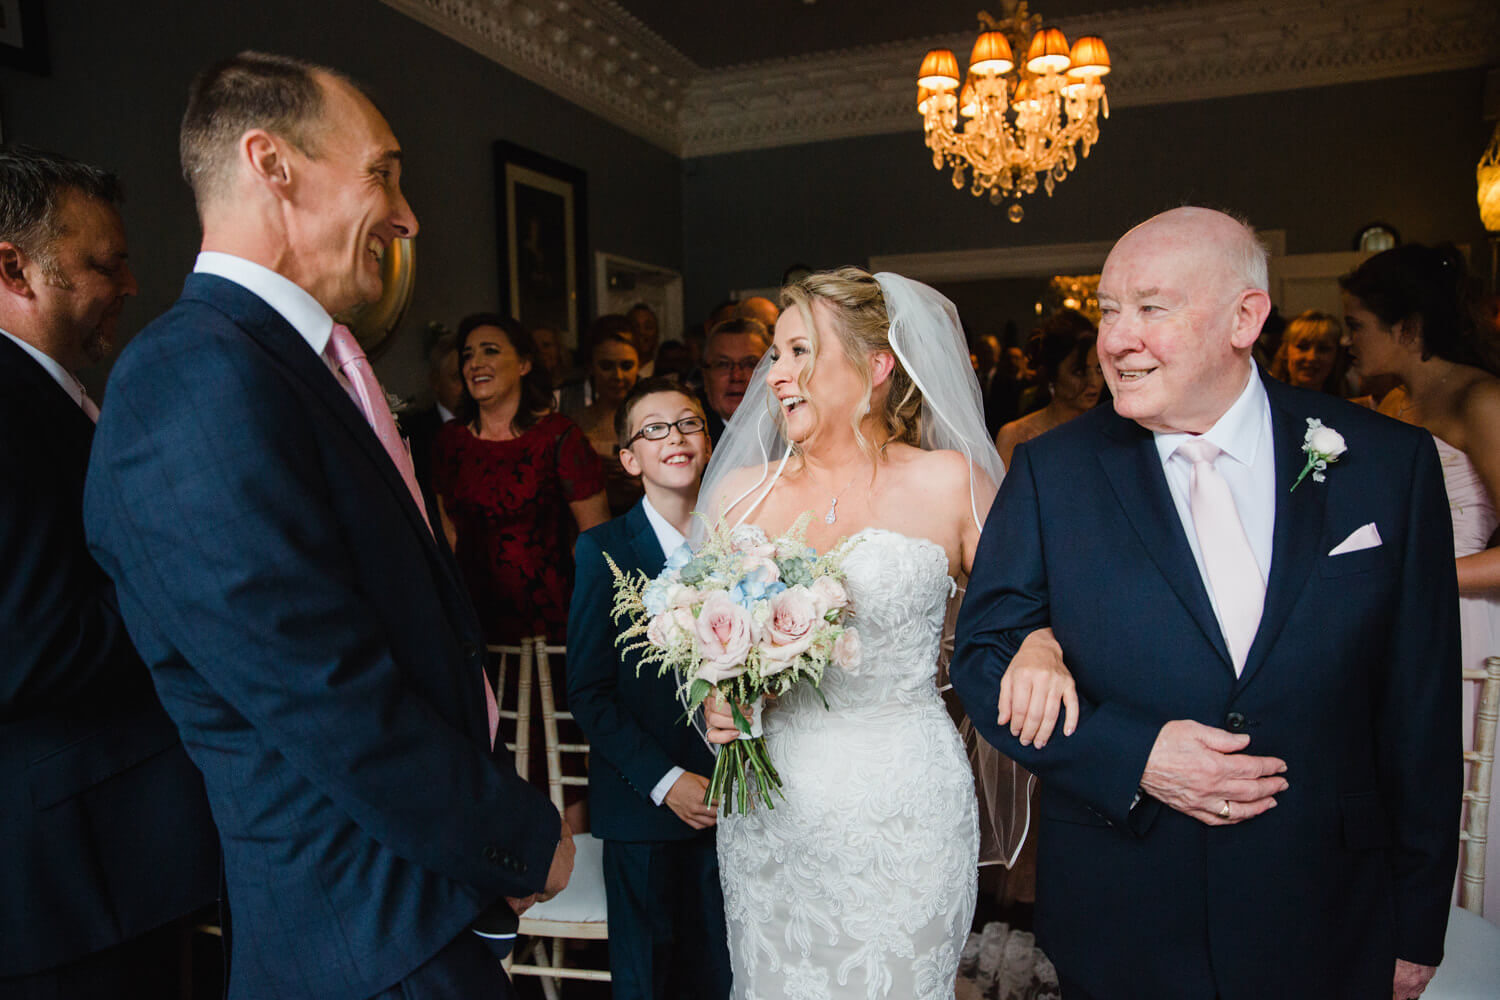 bride sharing a joke about wedding nuptials at didsbury house hotel while father looks on